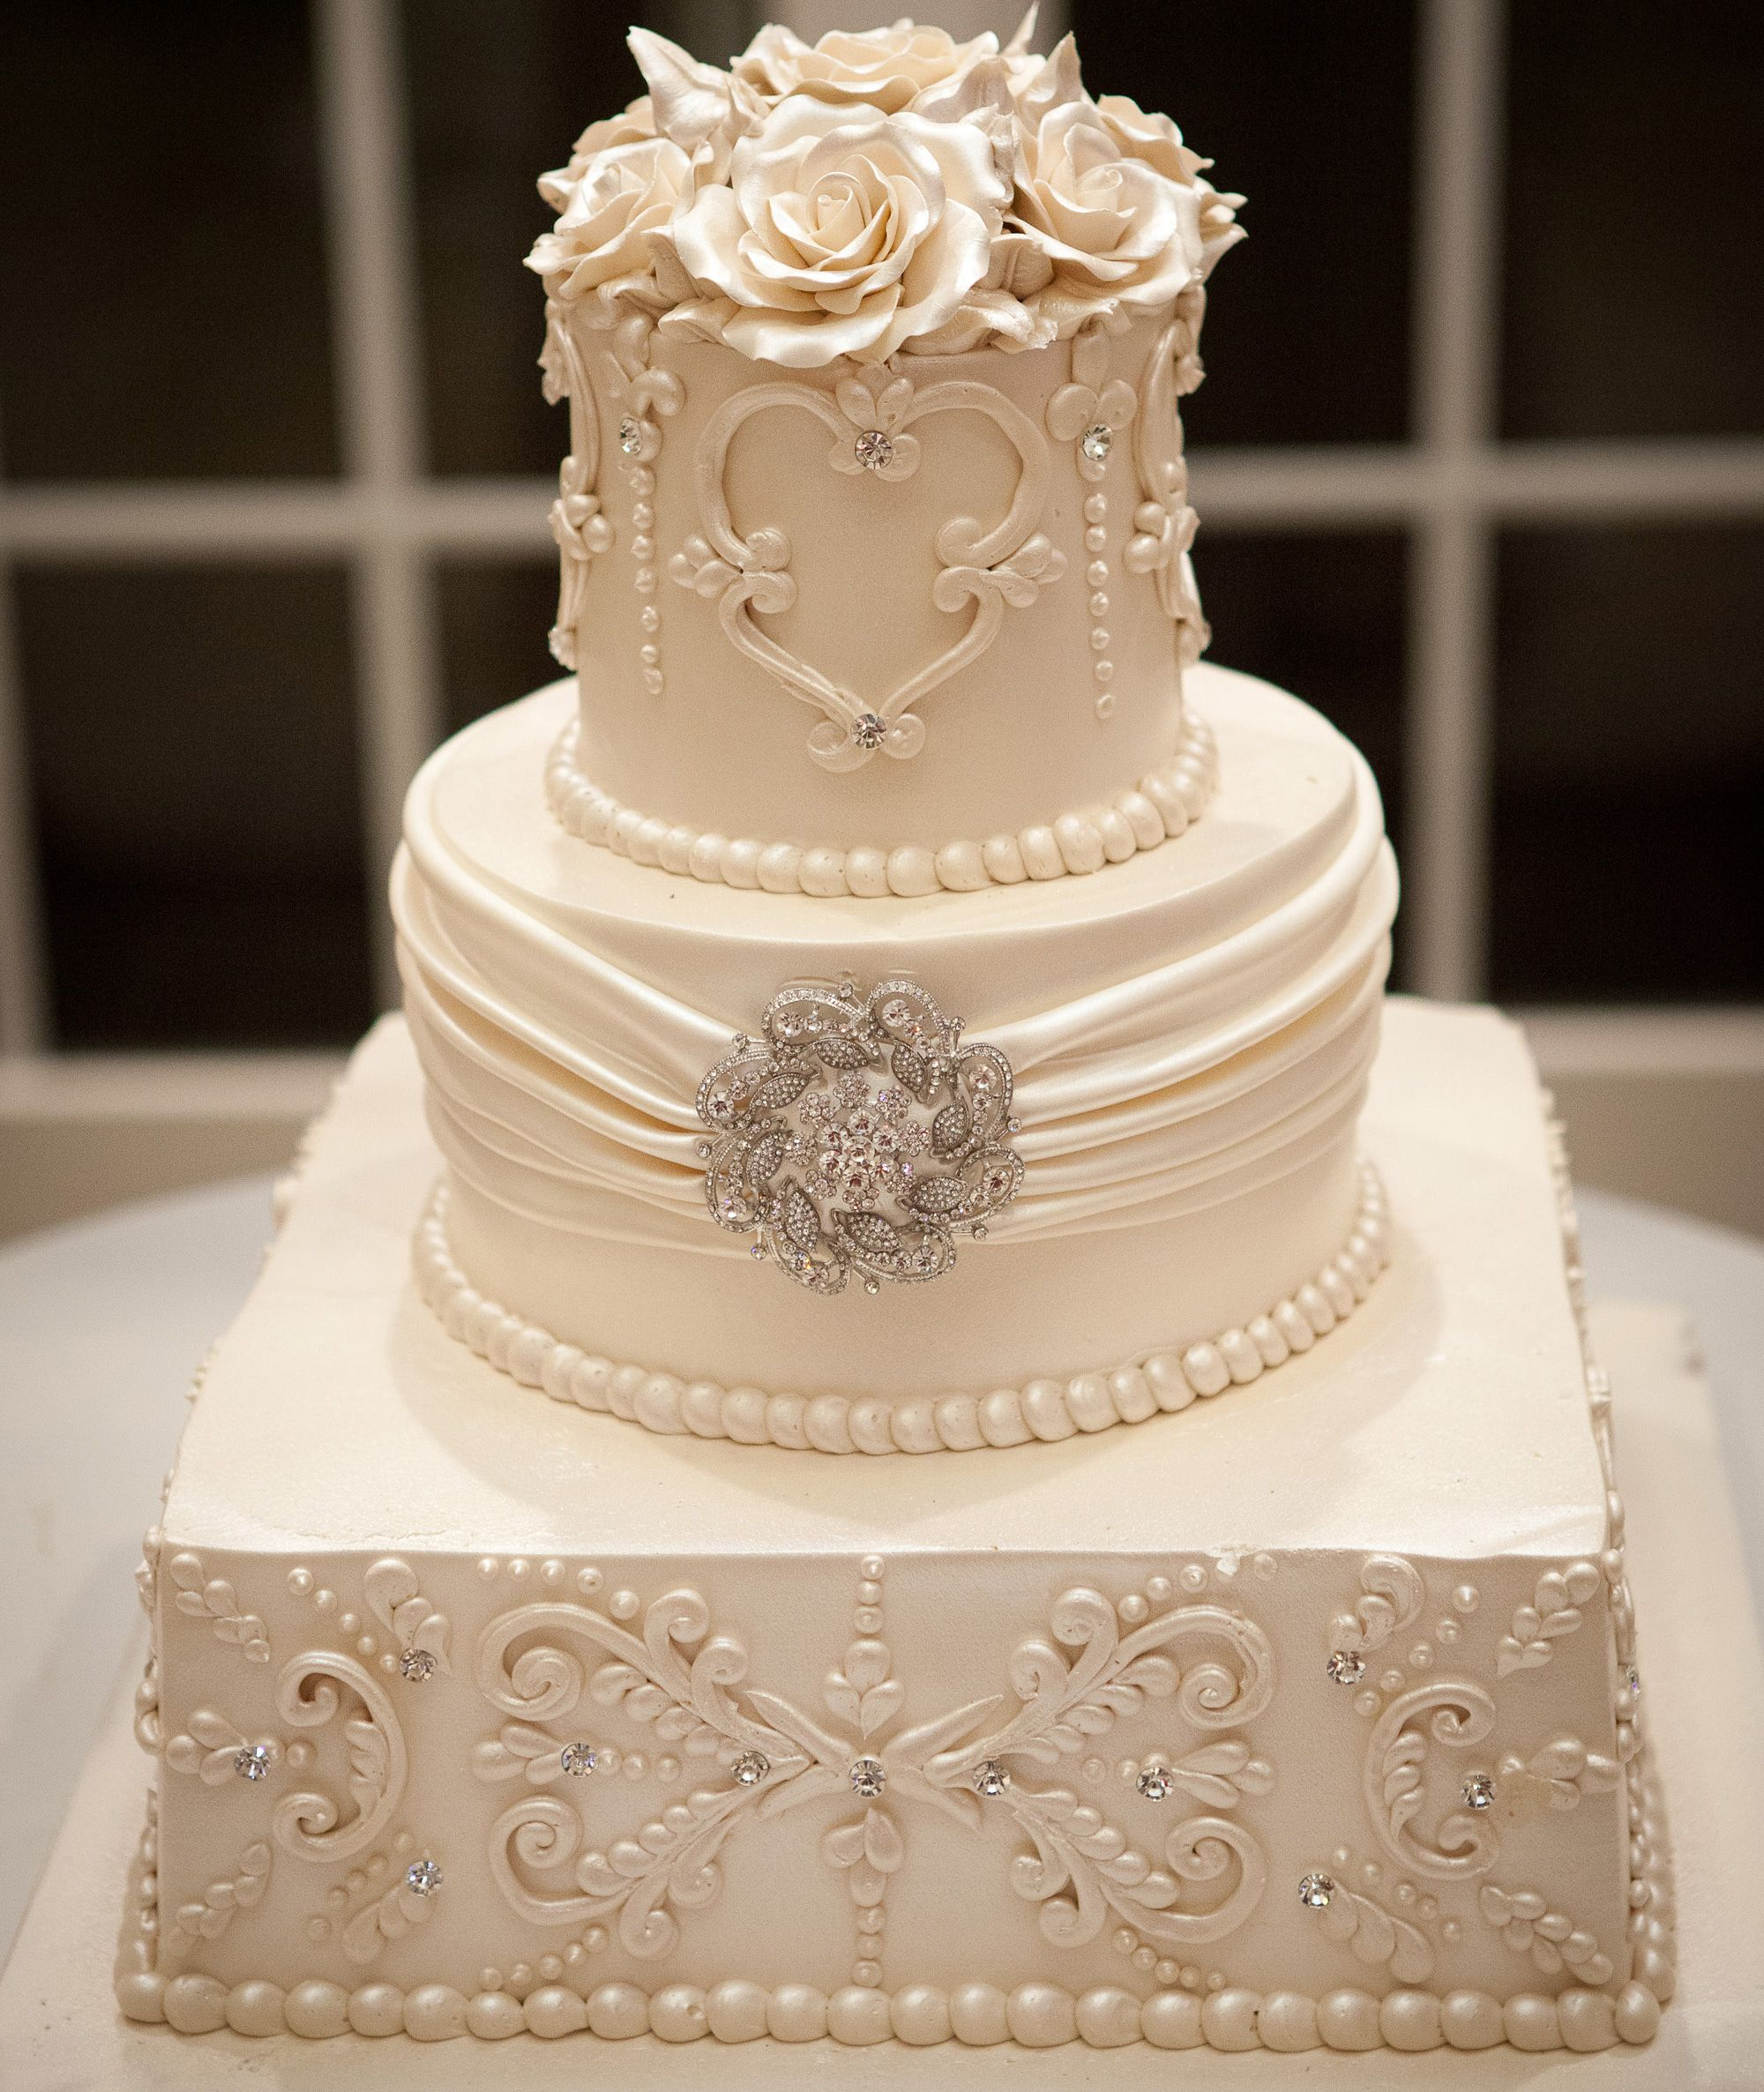 Wedding Cake Recipe Custom History: Custom Intricately Designed Icing On Our Cakes. Our